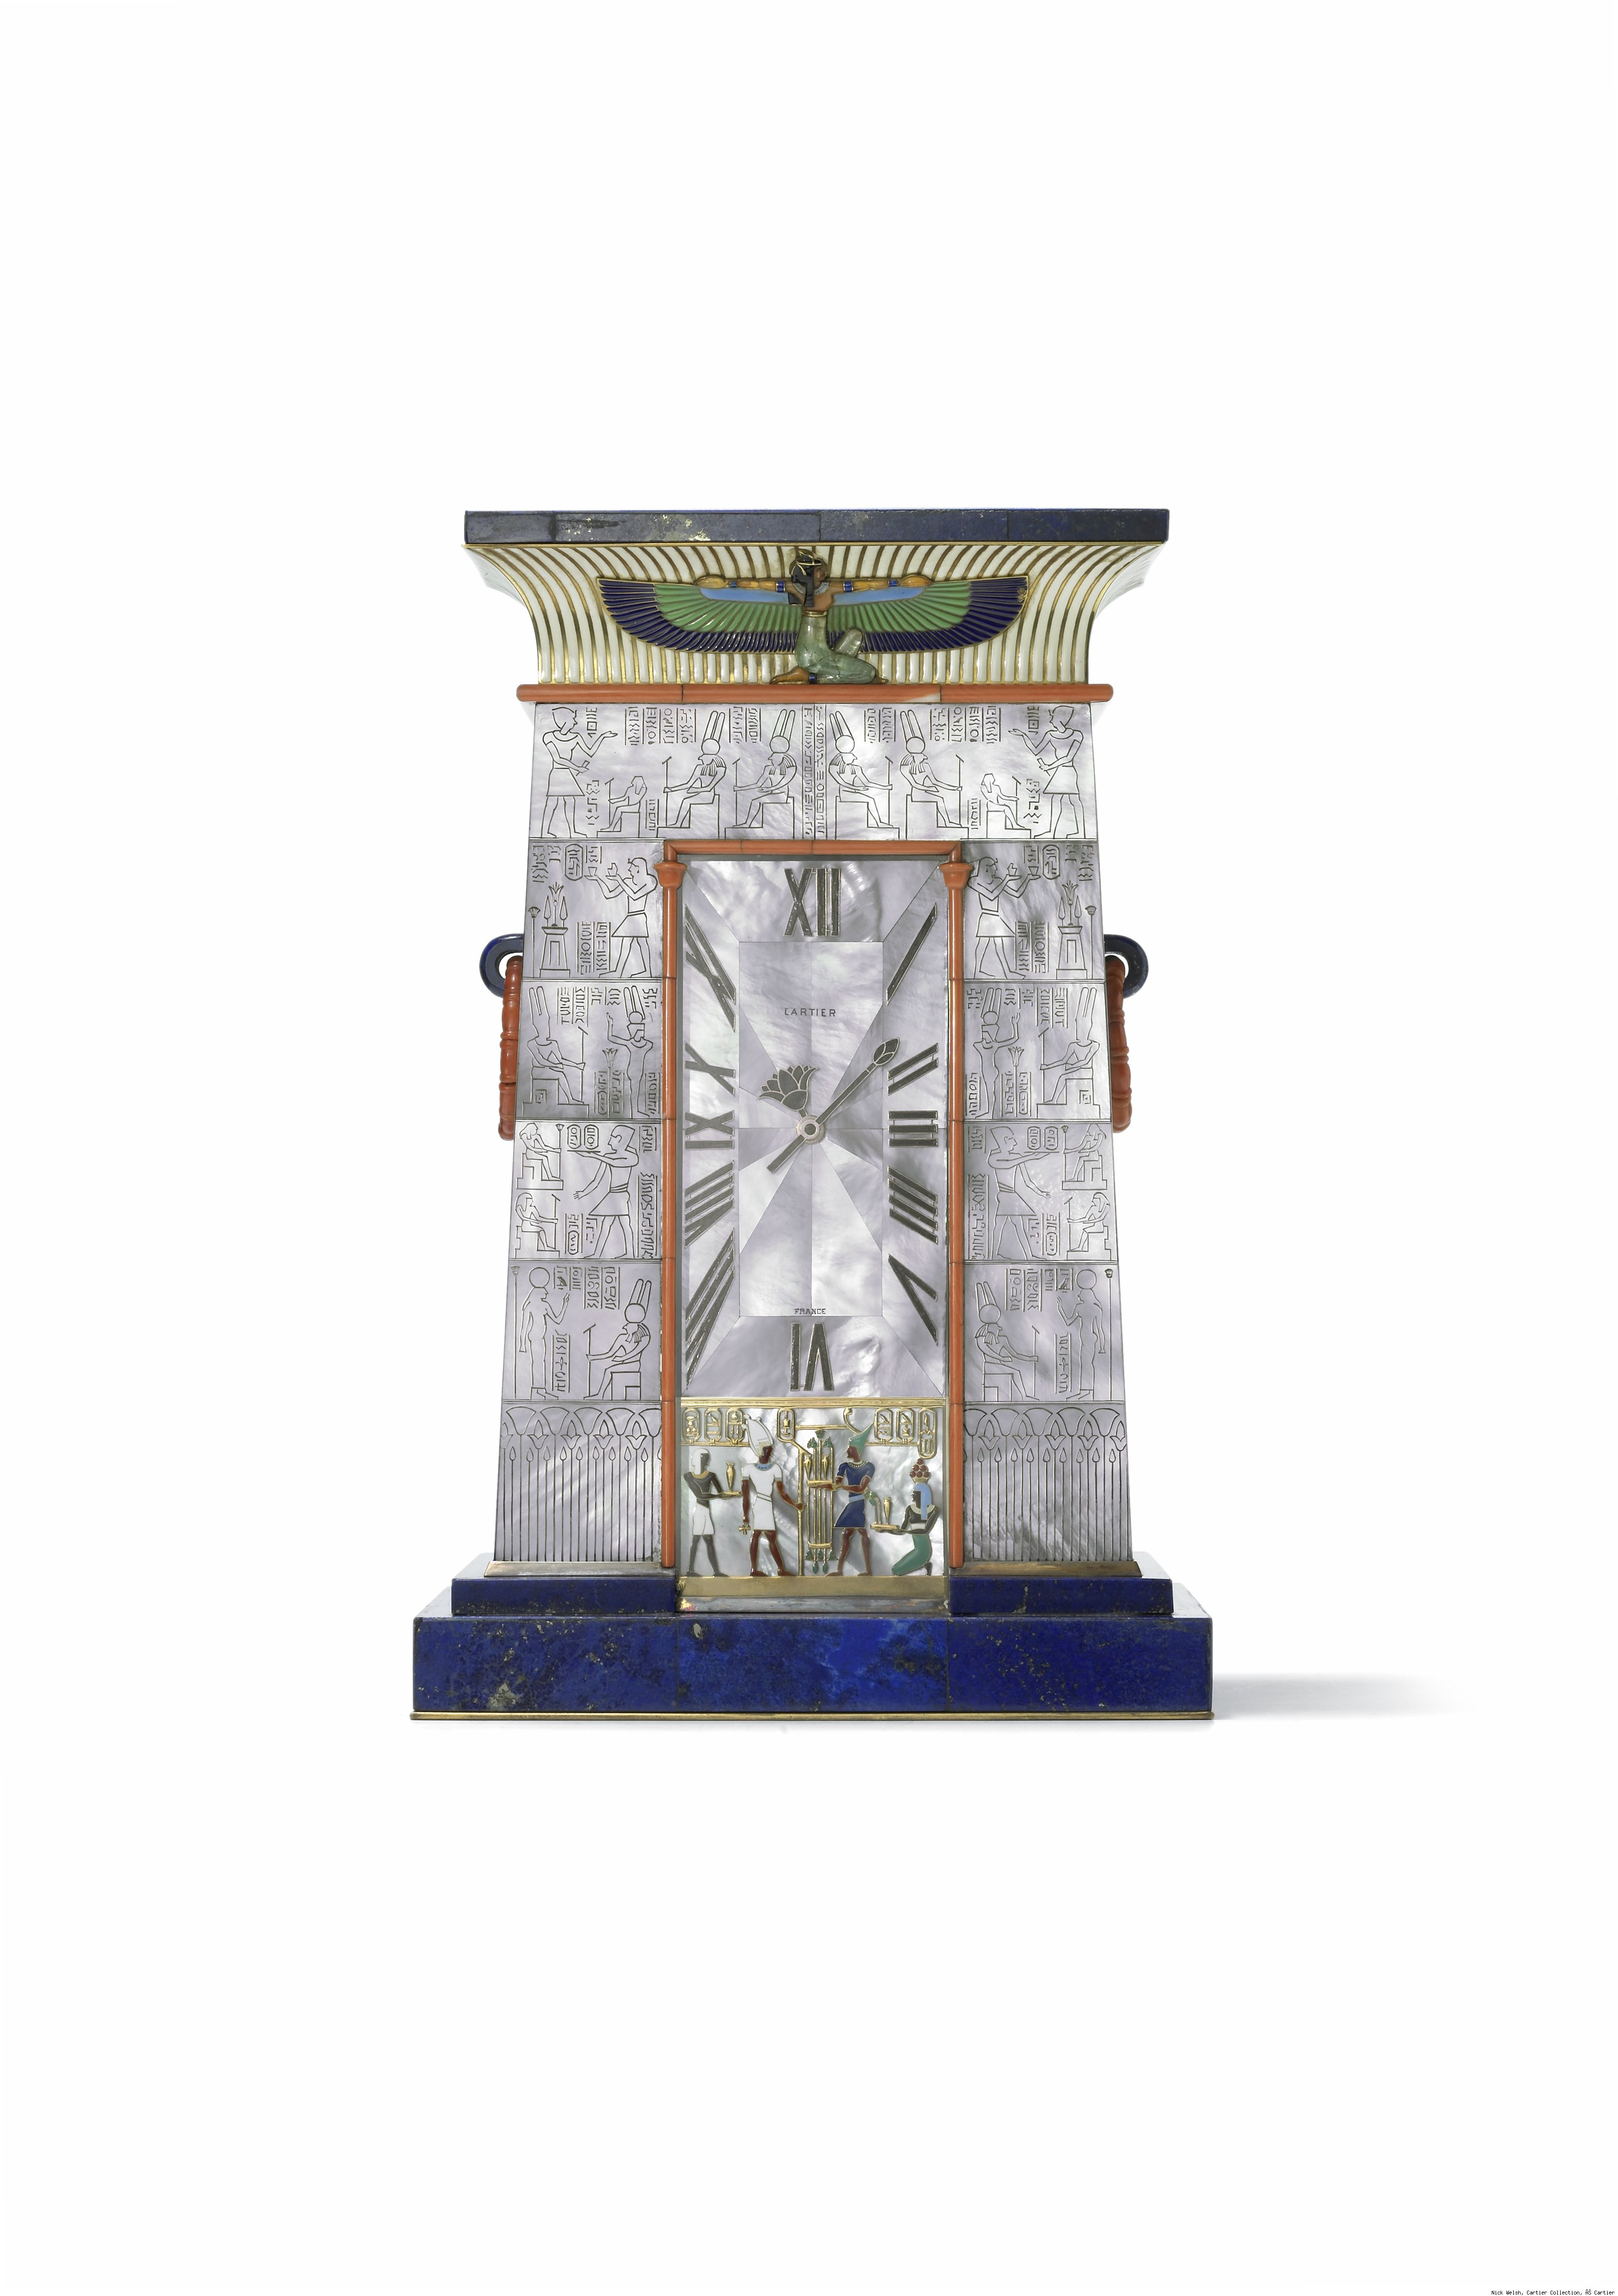 Cartier Egyptian Clock